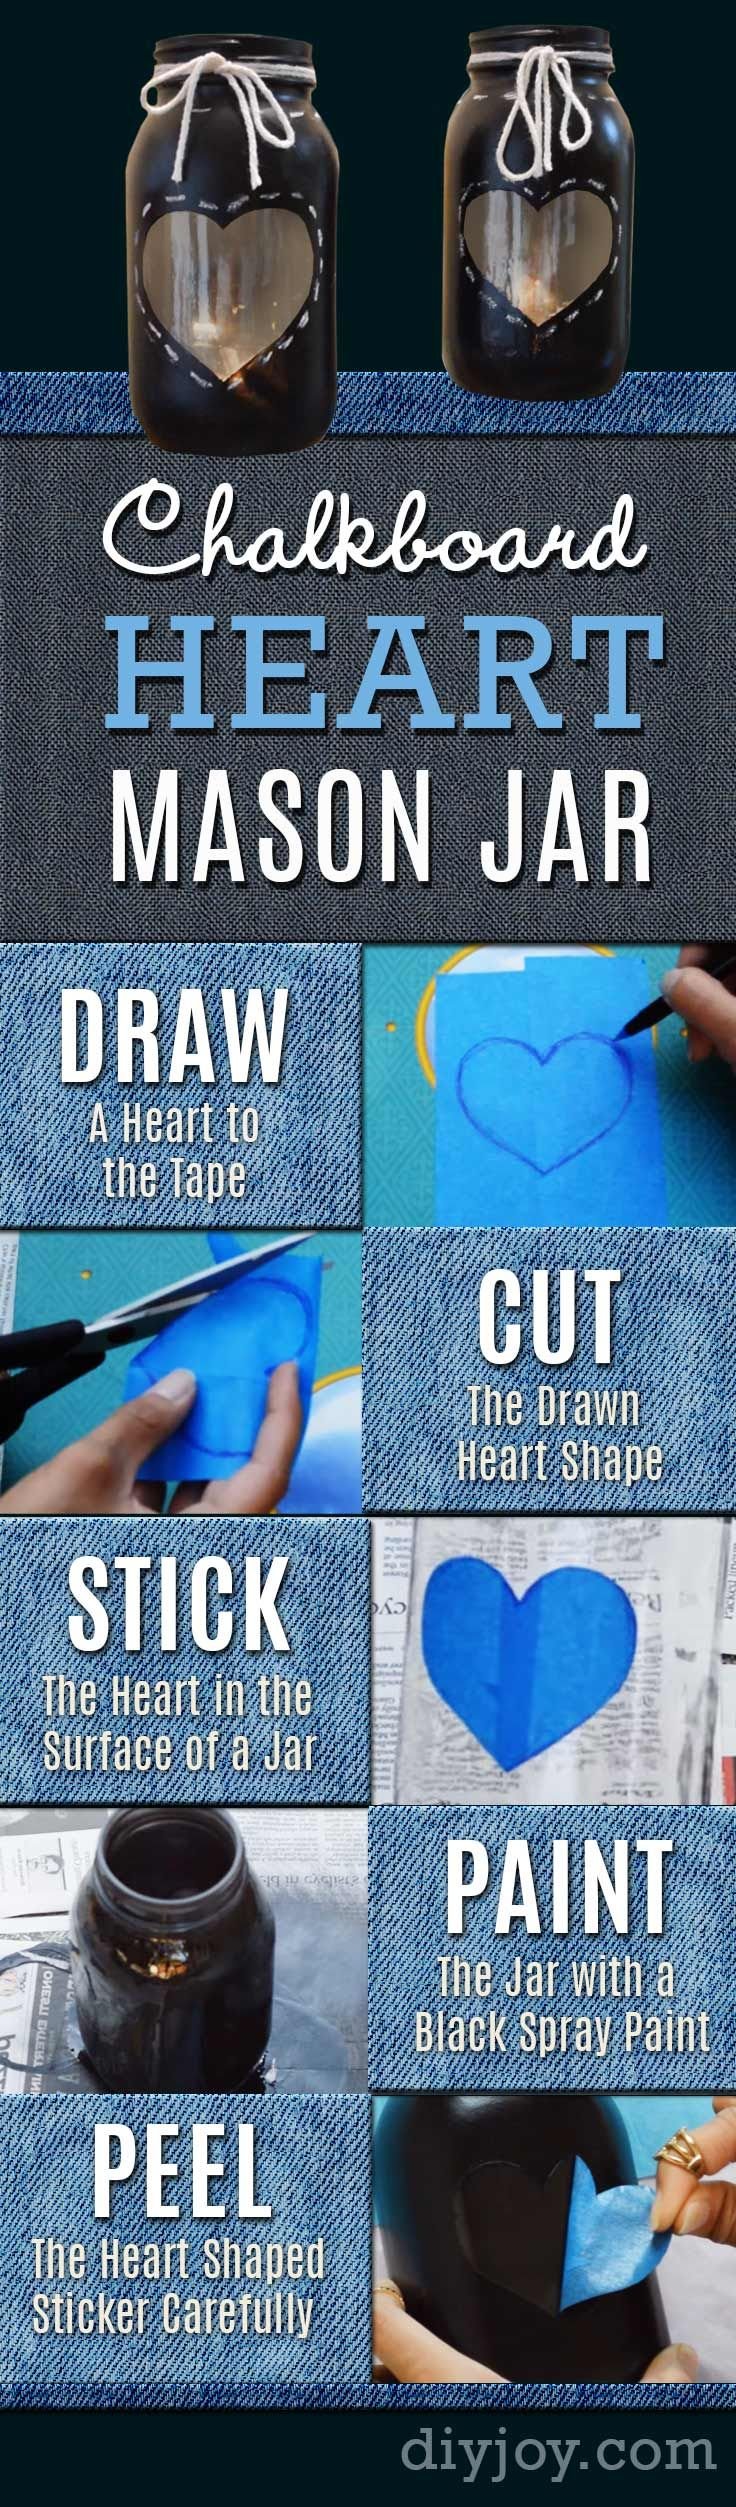 DIY Chalkboard Paint Ideas for Furniture Projects, Home Decor, Kitchen, Bedroom, Signs and Crafts for Teens. | Chalkboard Heart Candlelight Mason Jar